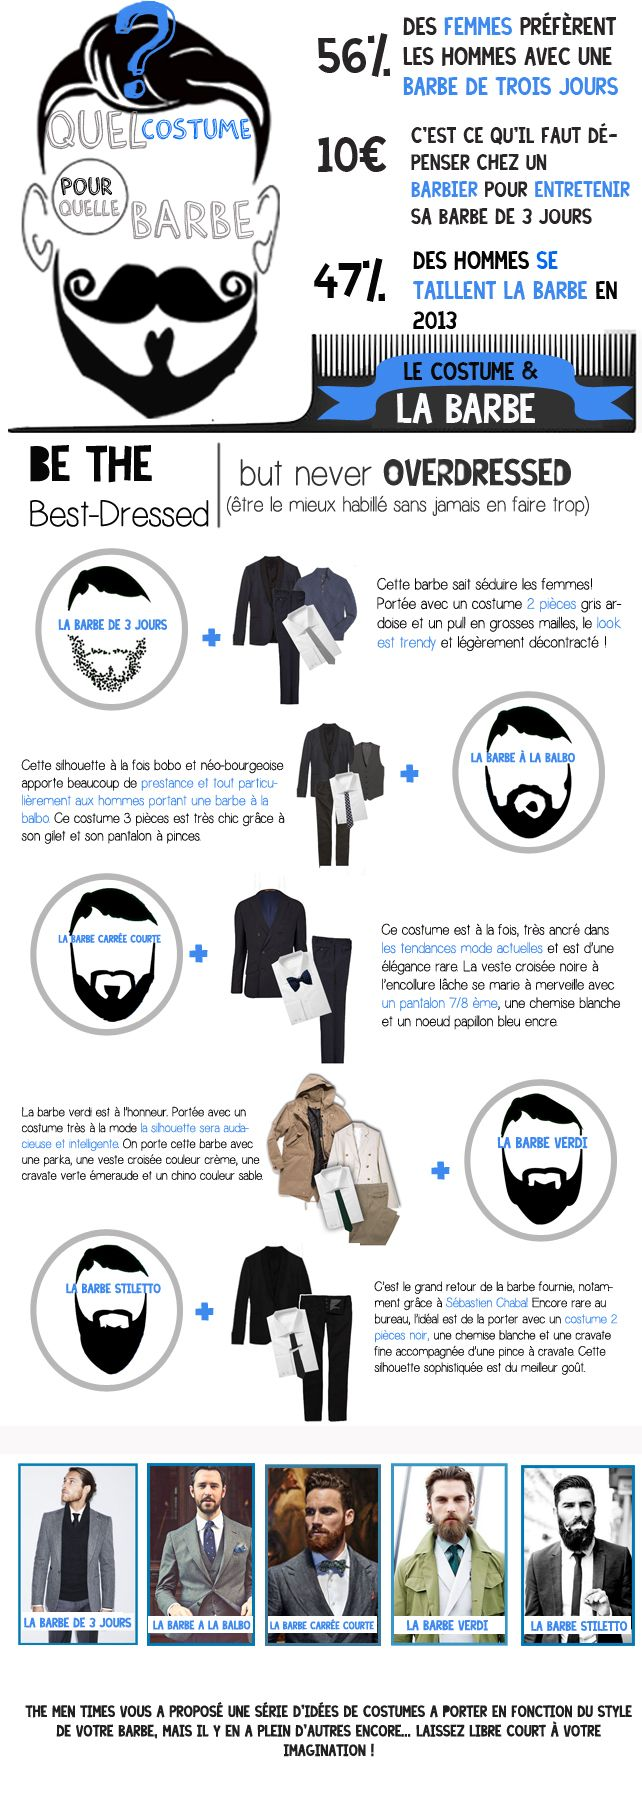 Quel costume pour quelle barbe?